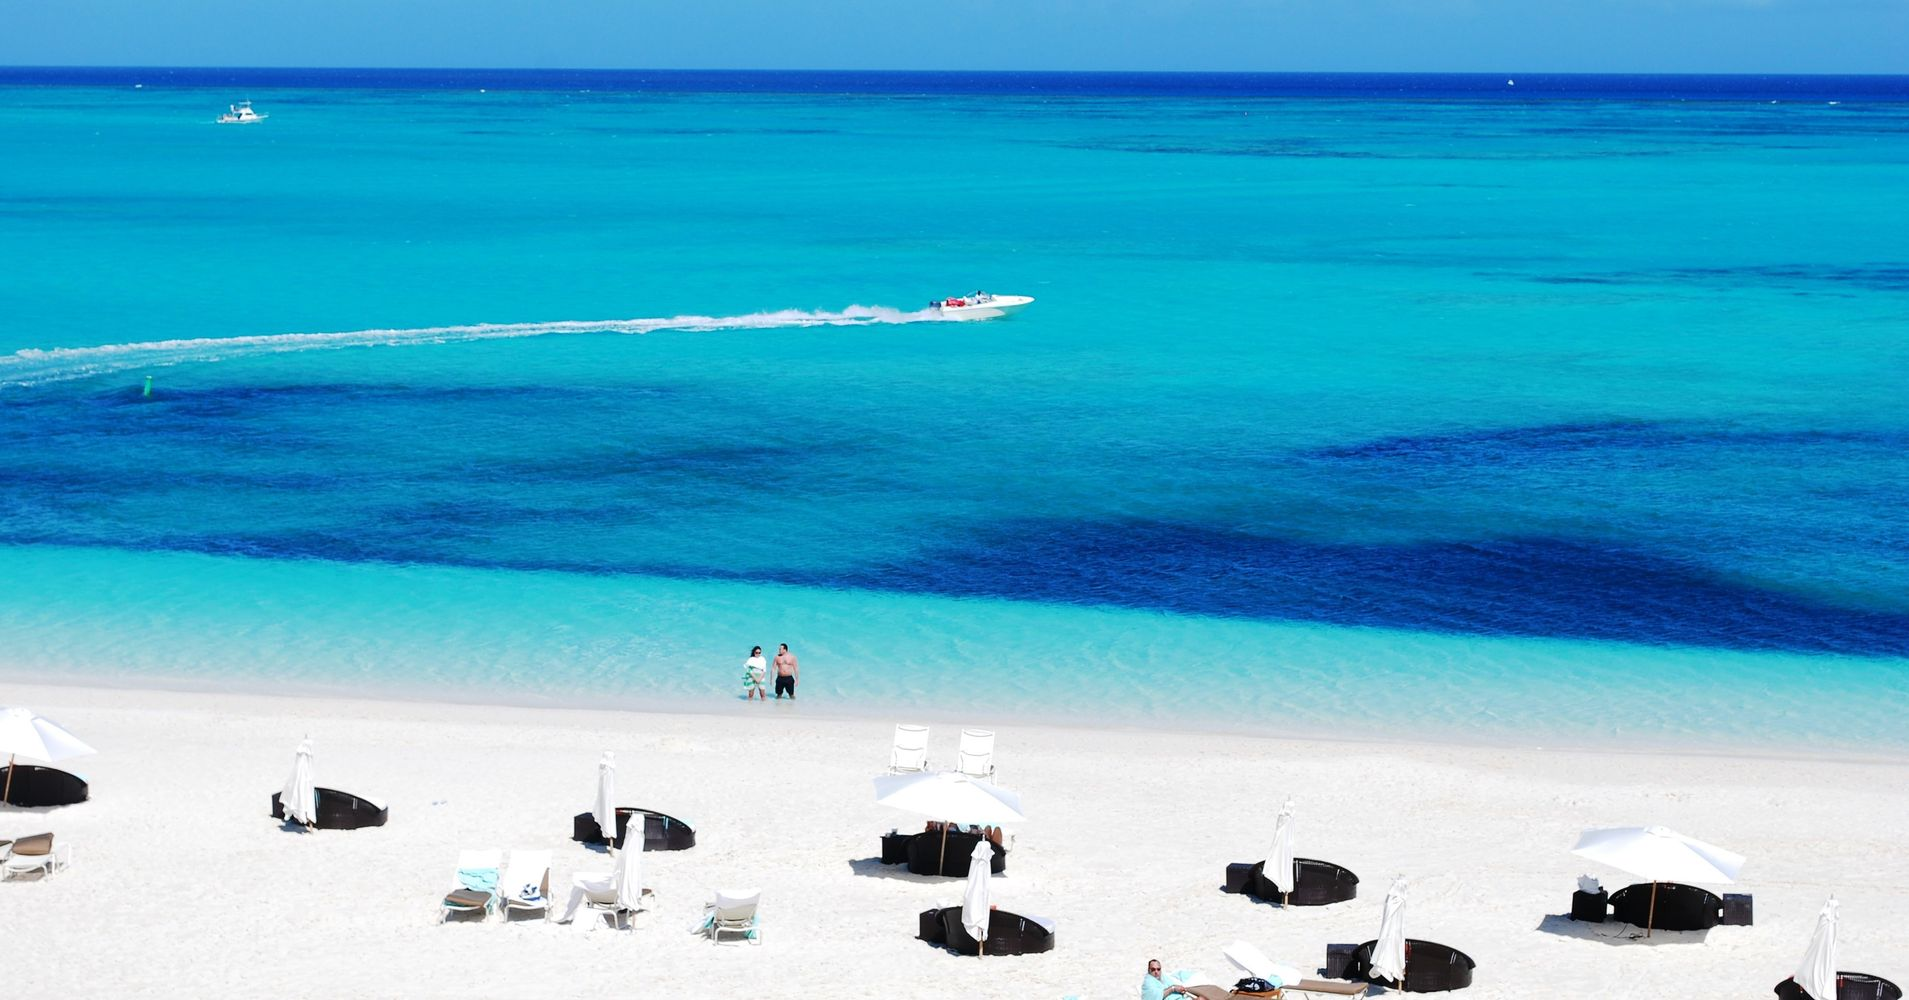 cd24c5d2acc48 The 10 Best Beaches In The World In 2018